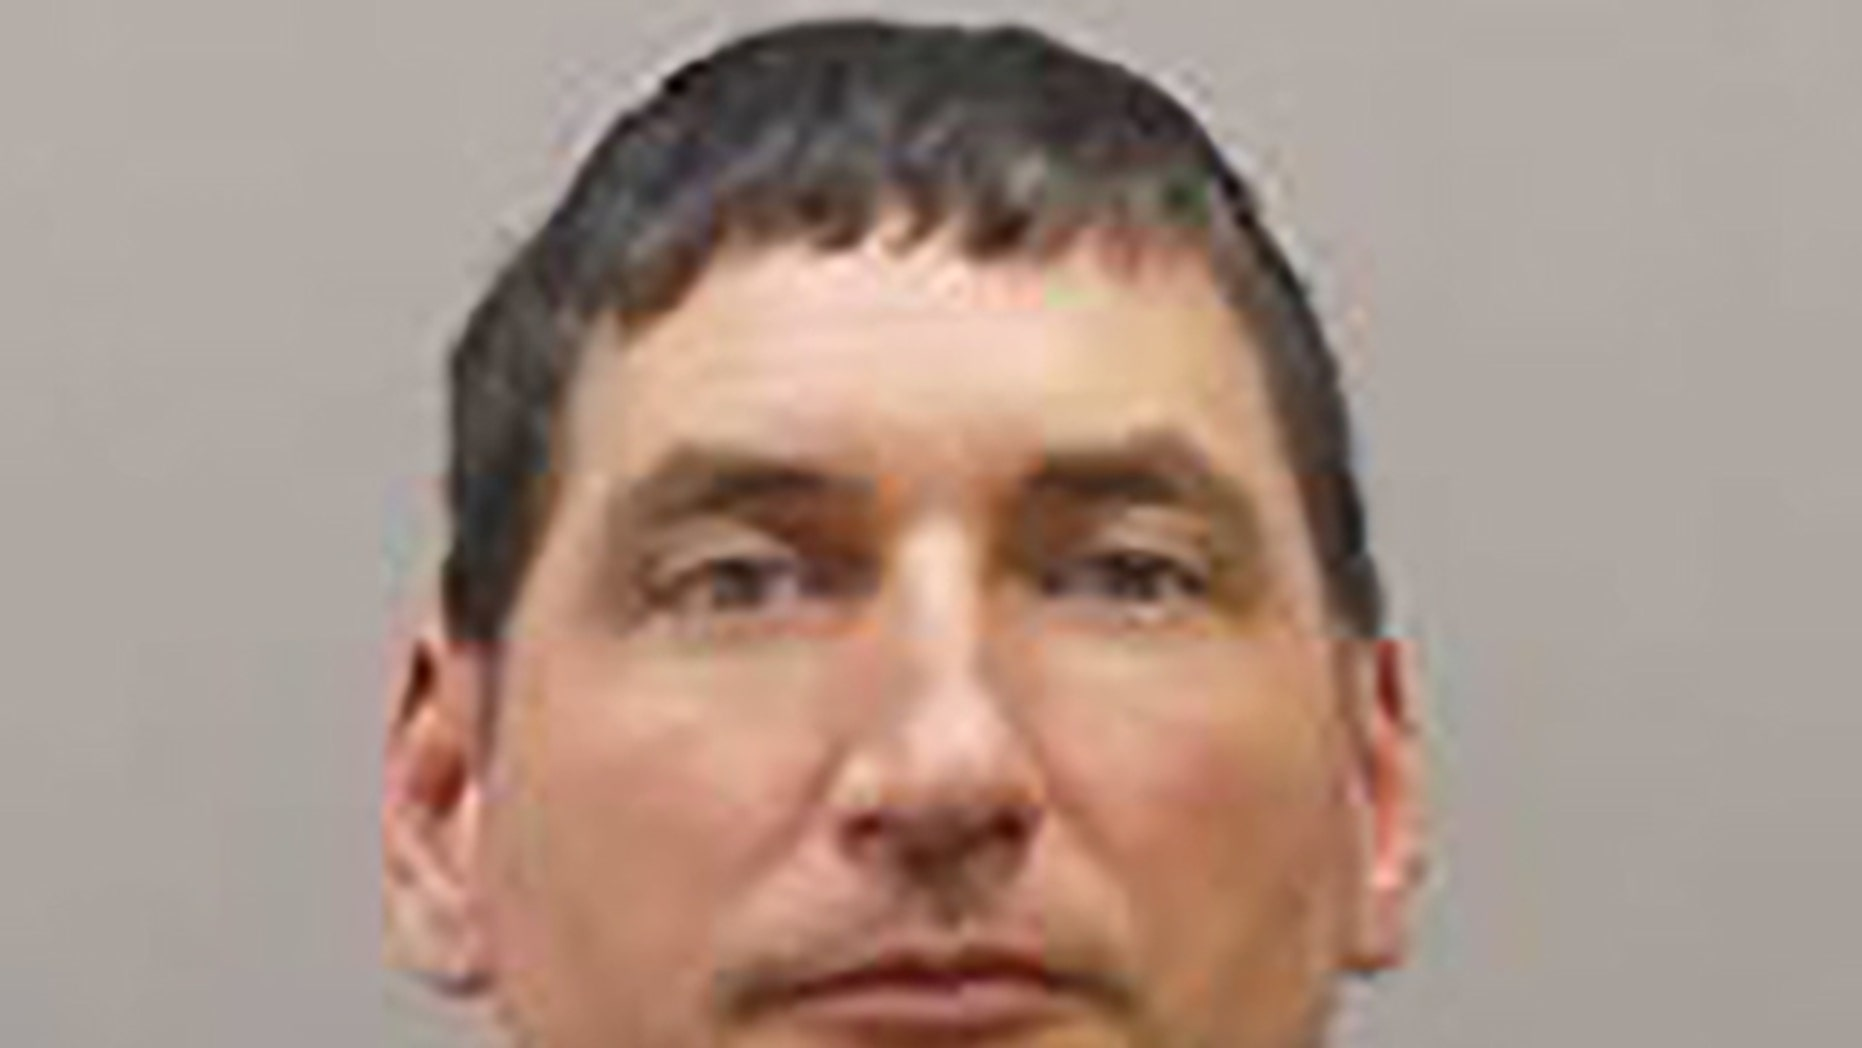 Paul Hicks, 43, turned himself in to authorities in Ohio on Wednesday for allegedly masterminding an 'elaborate' arson scheme intended to frame his ex-girlfriend, police said.